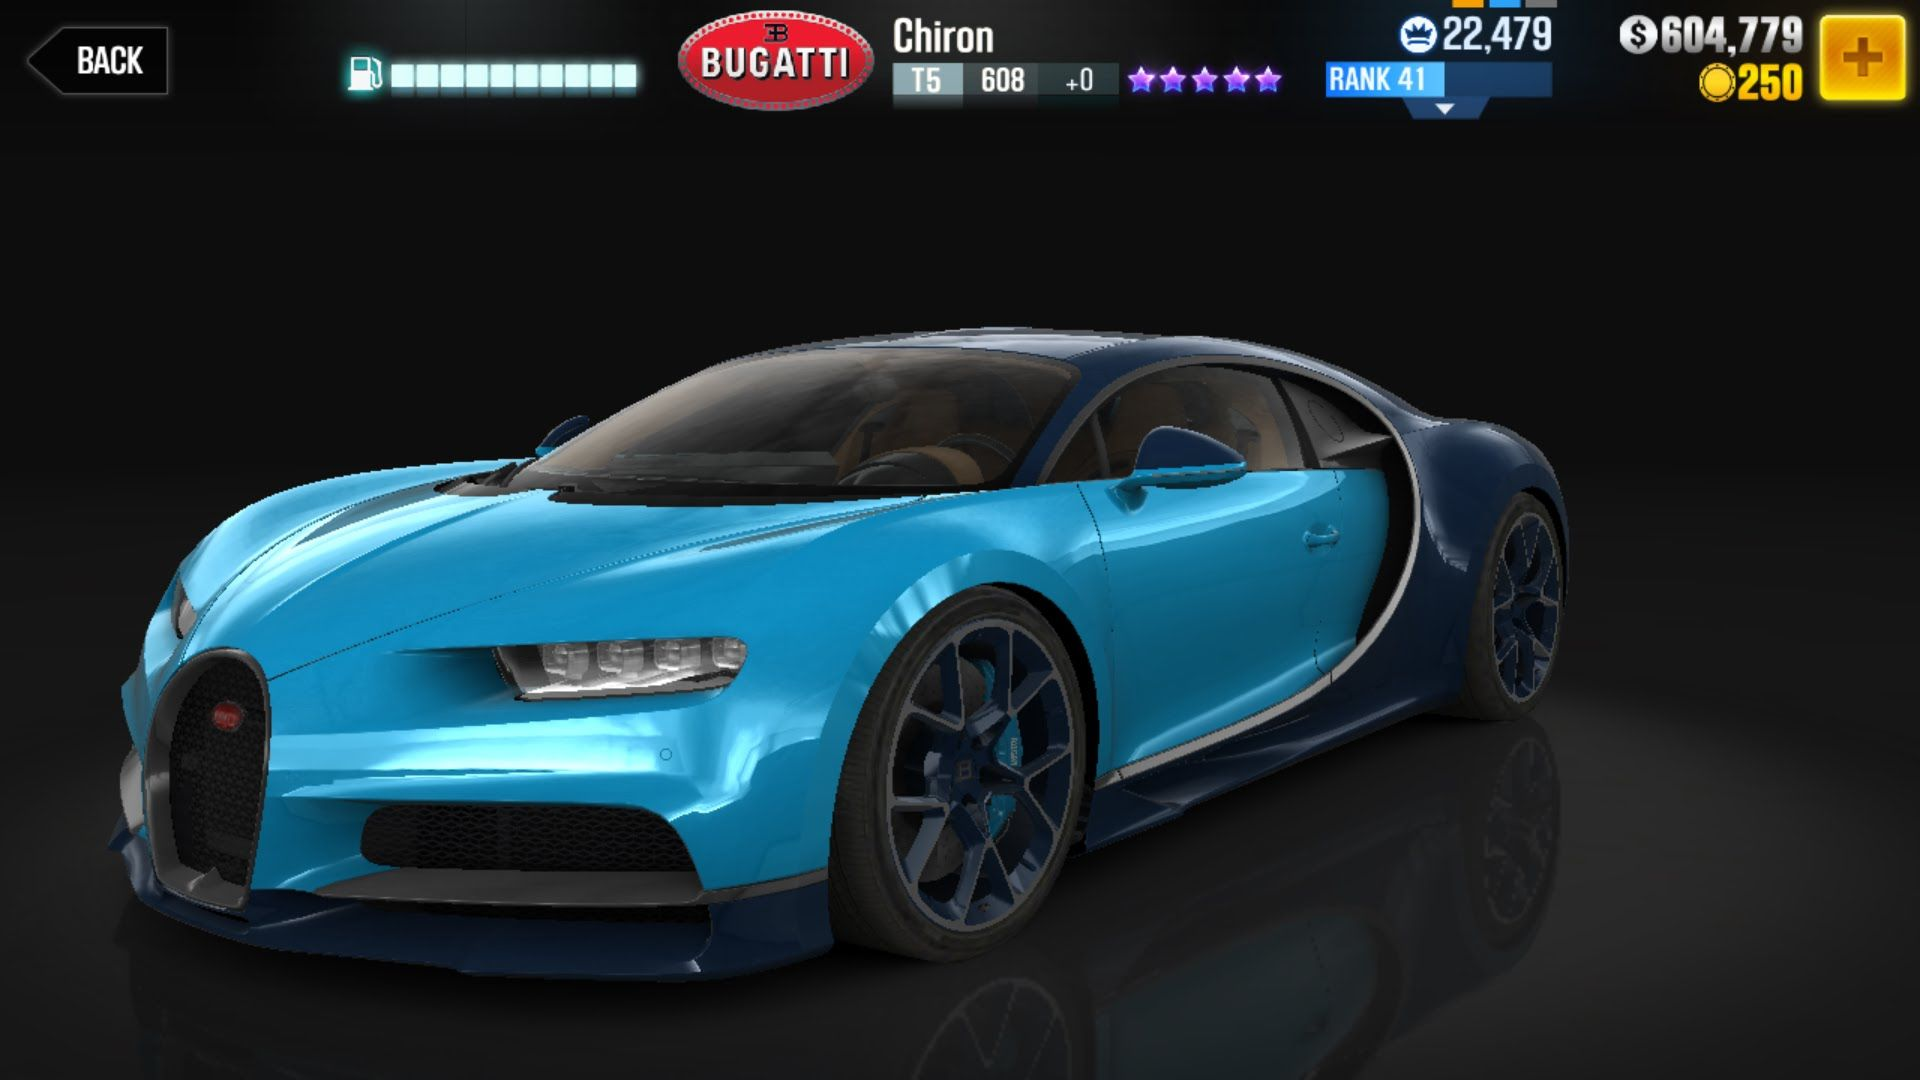 bugatti chiron csr racing 2 android gameplay hd marhal androidgames pinterest bugatti. Black Bedroom Furniture Sets. Home Design Ideas